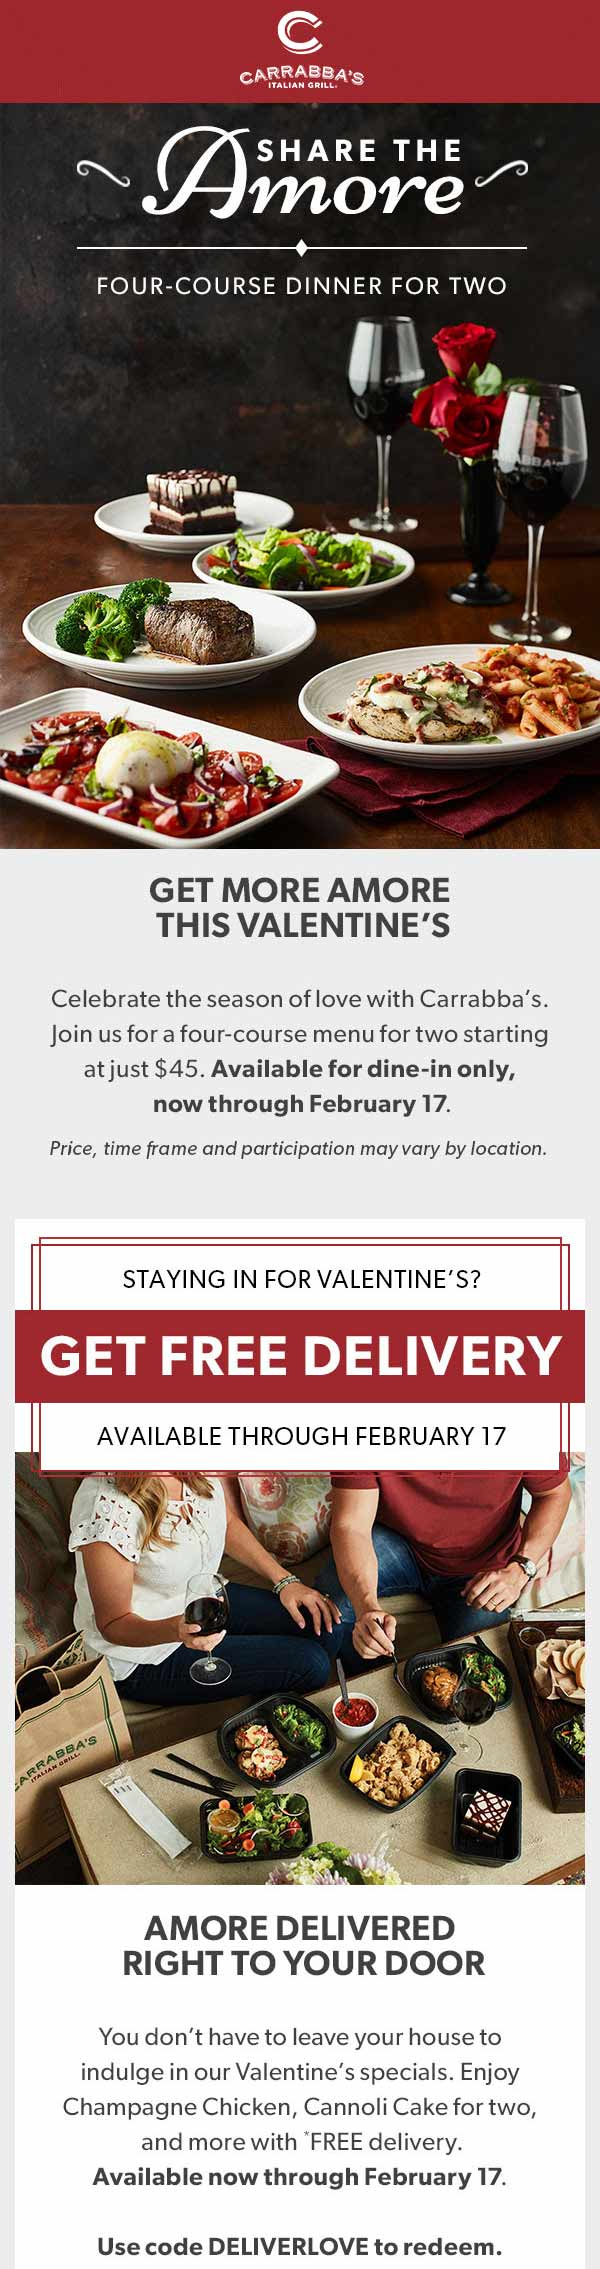 Carrabbas Coupon October 2019 4-course meal for two = $45 at Carrabbas restaurants